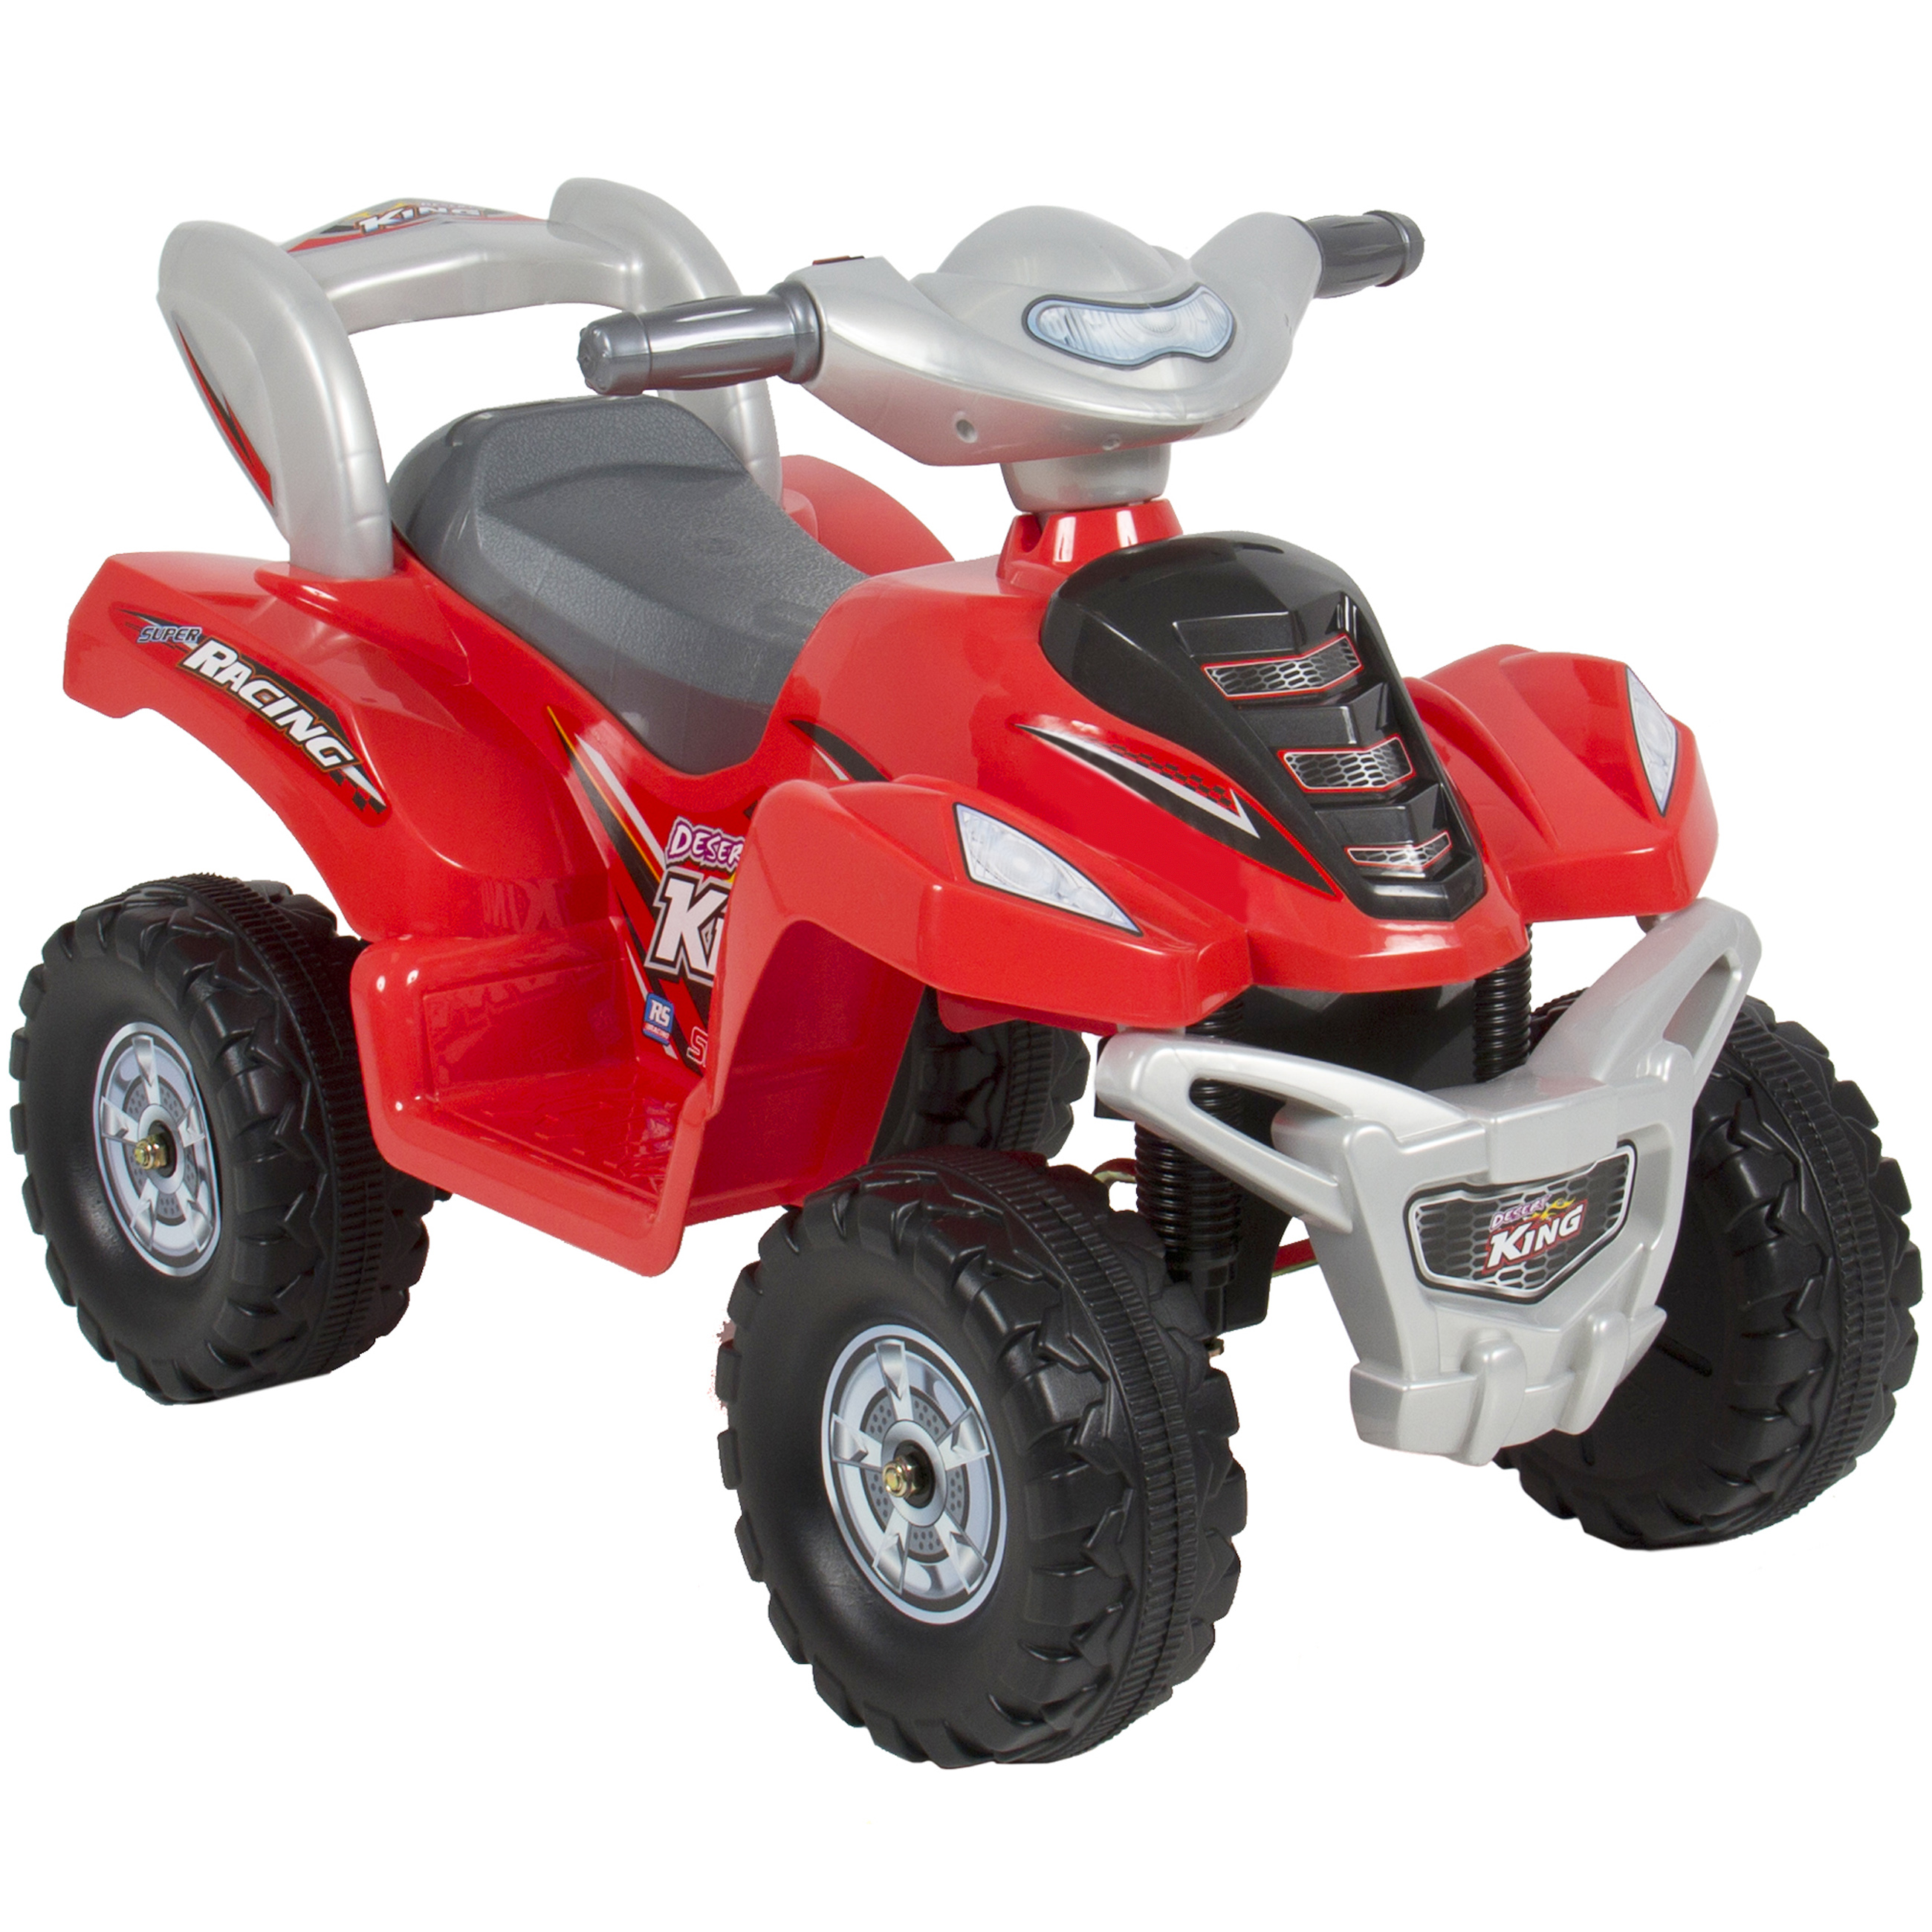 kids ride on atv 6v toy quad battery power electric 4 wheel power bicycle red walmartcom